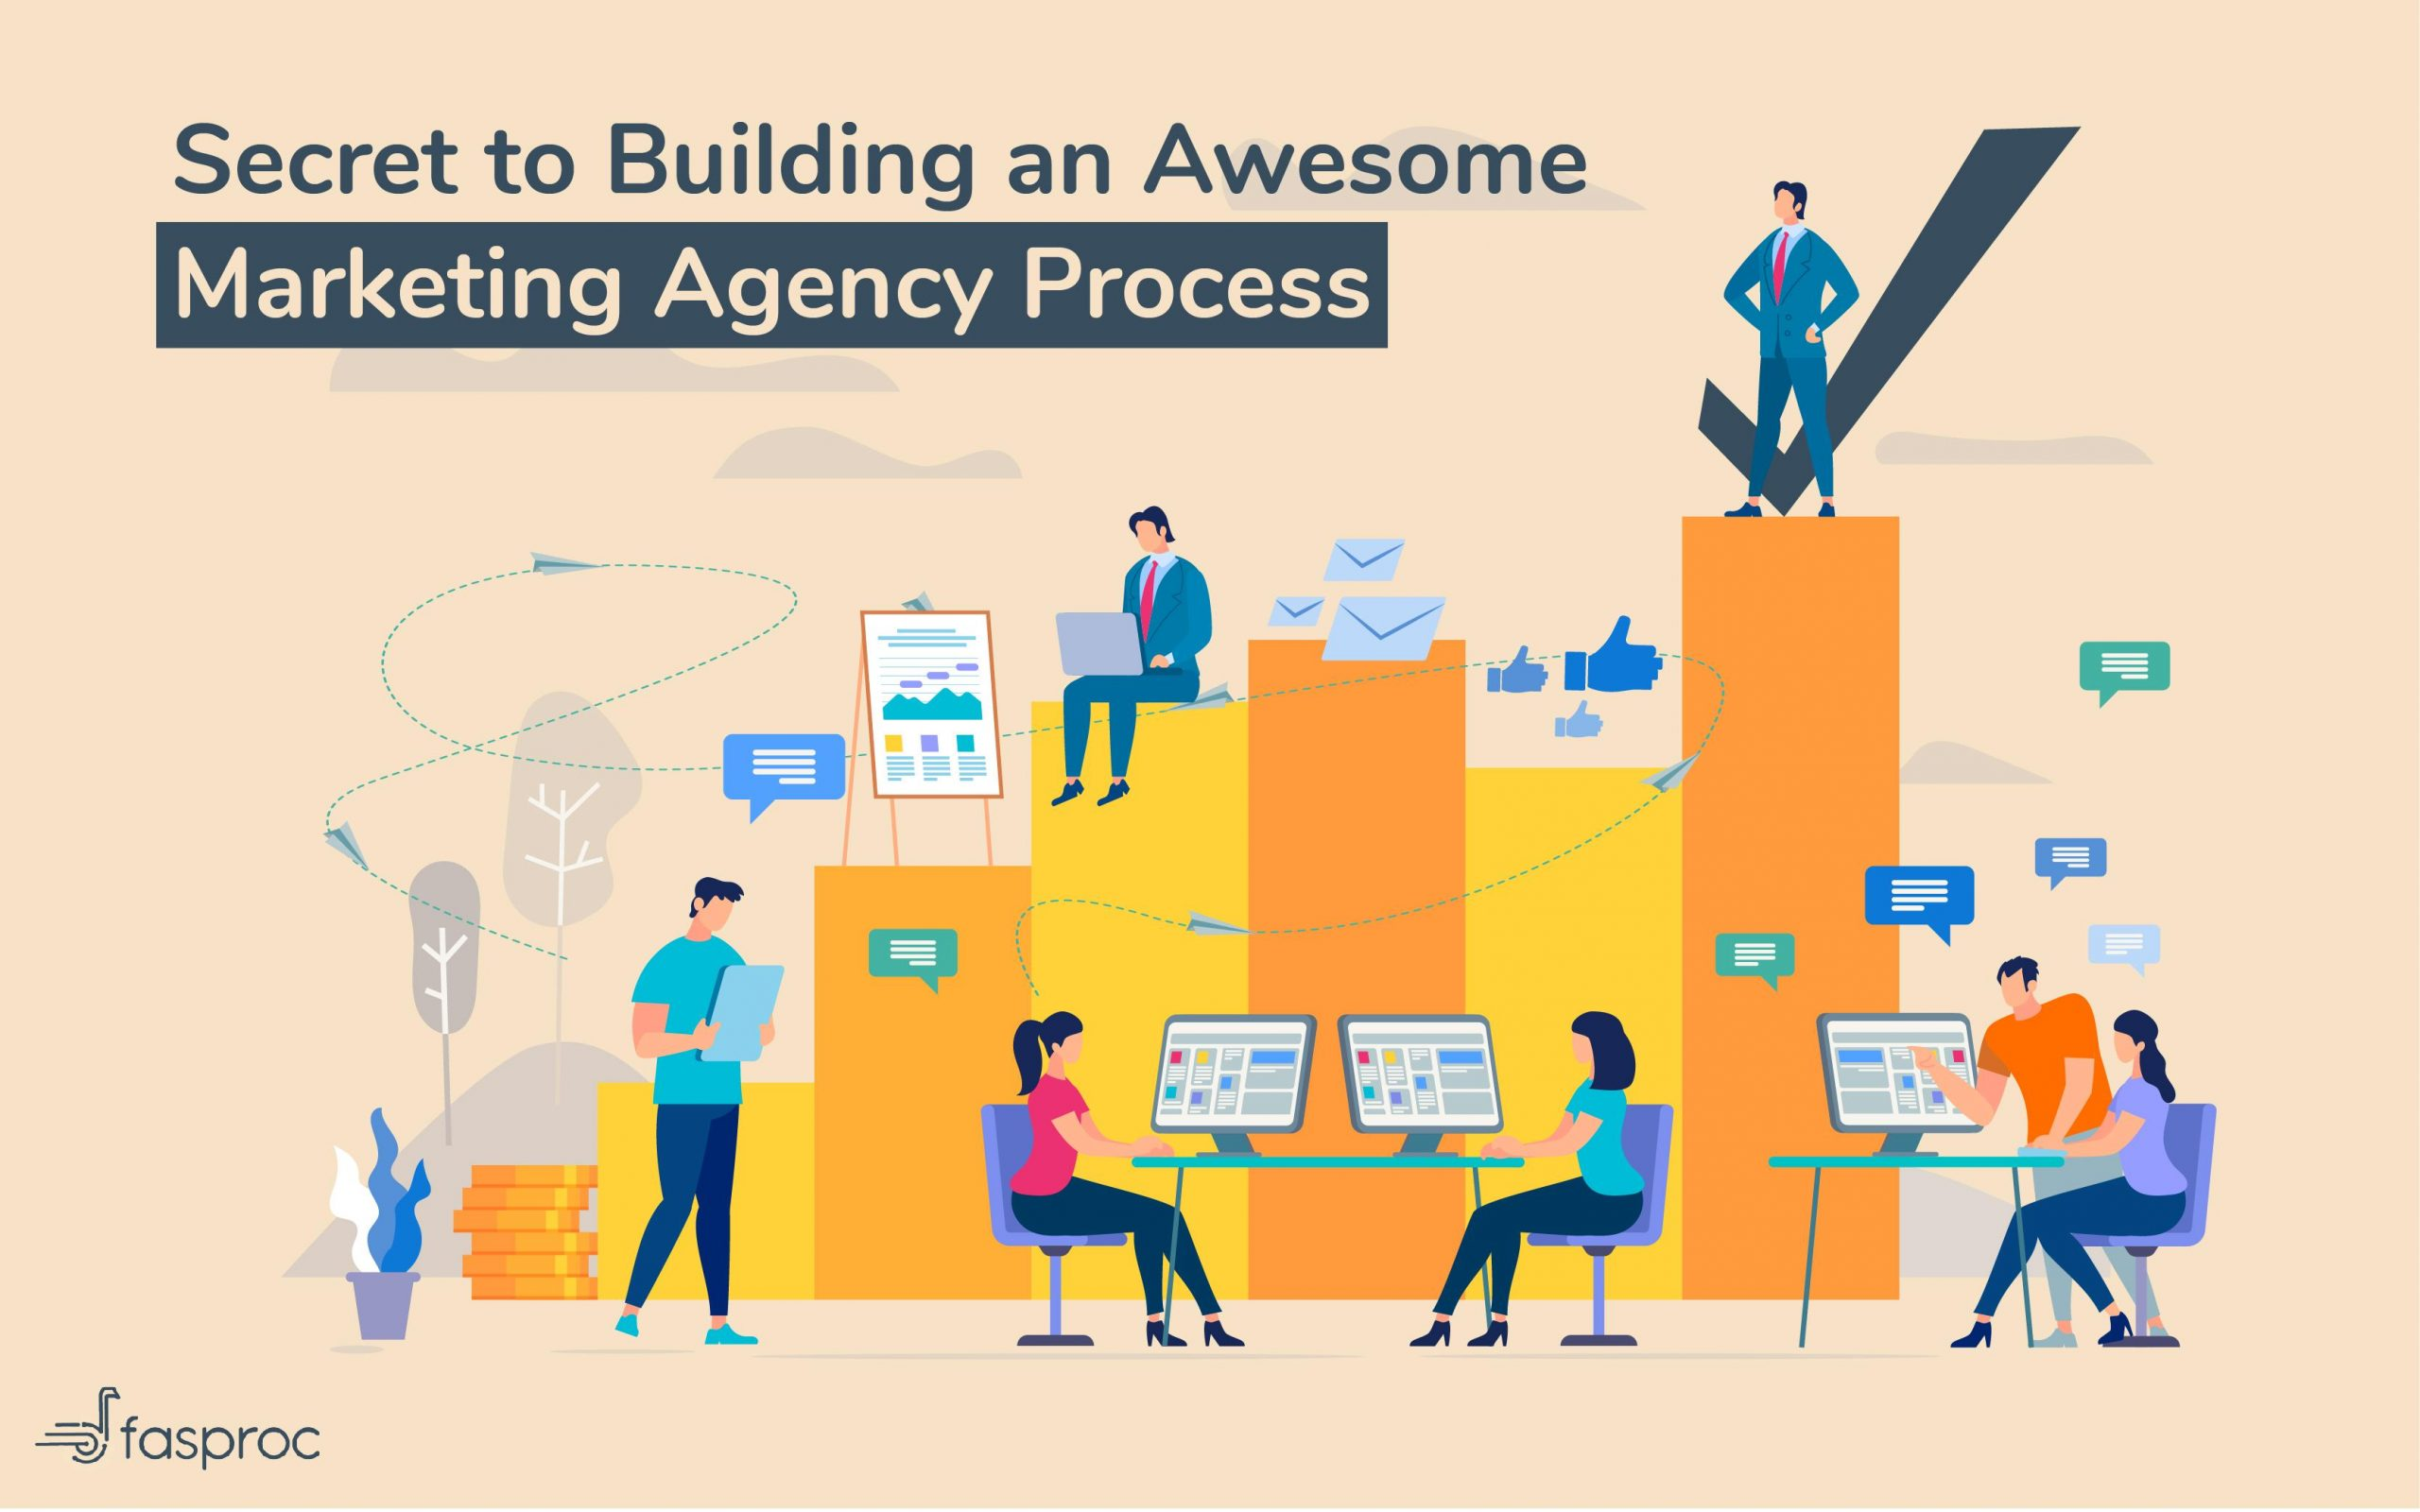 Secret to building an awesome marketing agency process